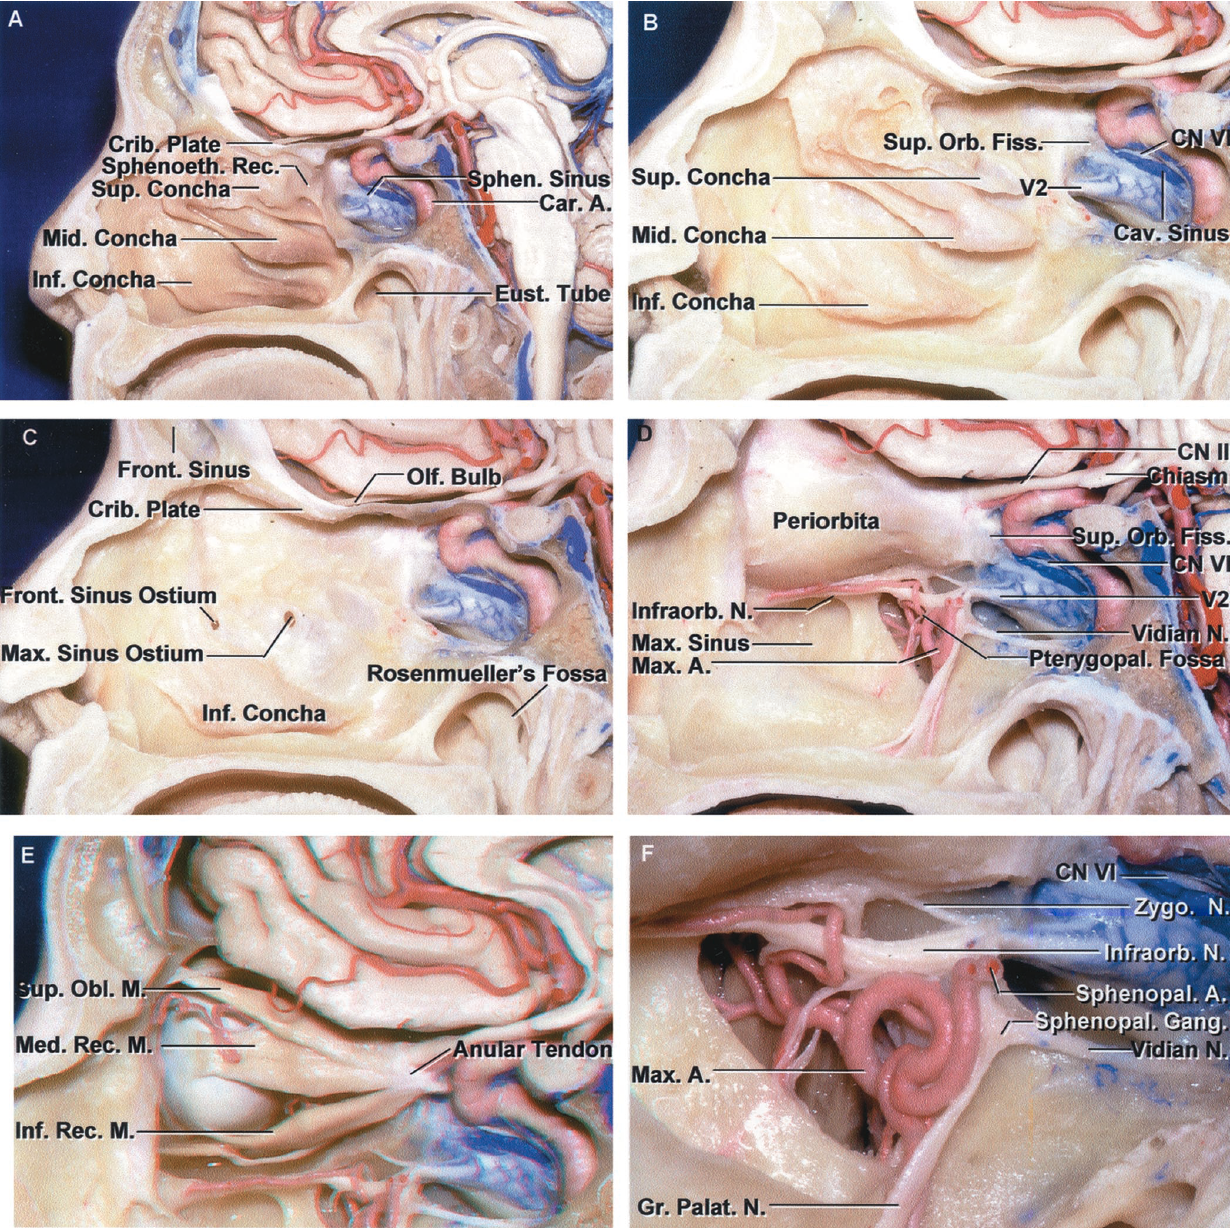 FIGURE 6.8. Structures below the medial part of the anterior and middle cranial fossae. A, midsagittal section of the anterior and middle cranial base to the right of the nasal septum. The area below the medial part of the anterior cranial fossa is formed by the frontal and ethmoidal sinuses and the nasal cavity. The nasal cavity is divided into the inferior, middle, and superior meatus and the sphenoethmoidal recess by the inferior, middle, and superior cochlea. The inferior meatus is located below the inferior turbinate, and the sphenoethmoidal recess, into which the sphenoid sinus opens, is located above the superior turbinate. The central part of the middle cranial base is formed by the body of the sphenoid bone, which contains the sphenoid sinus and sella with the pituitary gland. The cribriform plate is located in the roof of the nasal cavity. The nasopharynx and the opening of the eustachian tube are located below the sphenoid sinus. B, some of the mucosa has been removed from the concha. The inferior concha is a separate bone attached to the maxilla. The middle and superior concha are appendages of the ethmoid bone. The carotid artery courses along the lateral margin of the sphenoid sinus. The prominence within the sphenoid sinus, formed by the superior orbital fissure, is located anterior to the intracavernous carotid, and the prominence overlying the maxillary nerve is located below the intracavernous carotid. C, the middle and superior turbinates have been removed to expose the ostia of the maxillary and frontal sinuses. Both open into the middle meatus below the middle turbinate. The nasolacrimal duct opens below the inferior concha. Rosenmüller's fossa is located behind the eustachian tube. D, the medial wall of the maxillary sinus and the ethmoid air cells have been removed to expose the orbit. The optic nerve enters the orbit above the superior orbital fissure. The maxillary nerve exits the foramen rotundum to enter the pterygopalatine fossa. The vidian nerve passes through the vidian canal and enters the posterior margin of the sphenopalatine ganglion in the pterygopalatine fossa. The floor of the anterior cranial fossa forms much of the roof of the orbit, and the maxillary sinus forms most of the floor of the orbit. The abducens nerve is seen below the intracavernous segment of the internal carotid artery. The pterygopalatine fossa is located anterior to the sphenoid sinus and below the orbital apex. E, the intraorbital fat has been removed to expose the superior oblique and medial and inferior rectus muscles. F, enlarged view of the pterygopalatine fossa. The maxillary nerve exits the foramen rotundum to enter the pterygopalatine fossa, where it gives rise to the infraorbital, zygomatic, and palatine nerves and communicating rami to the pterygopalatine ganglion. The vidian nerve exits the vidian canal to enter the pterygopalatine ganglion. The pterygopalatine fossa contains branches of the maxillary nerve, the junction of the vidian nerve with the pterygopalatine ganglion, and terminal branches of the maxillary artery. A., artery; Car., carotid; Cav., cavernous; CN, cranial nerve; Crib., cribriform; Eust., eustachian; Fiss., fissure; Front., frontal; Gang., ganglion; Gr., greater; Inf., inferior; Infraorb., infraorbital; M., muscle; Max., maxillary; Med., medial; Mid., middle; N., nerve; Obl., oblique; Olf., olfactory; Orb., orbital; Palat., palatine; Pterygopal., pterygopalatine; Rec., recess, rectus; Sphen., sphenoid; Sphenoeth., sphenoethmoid; Sphenopal., sphenopalatine; Sup., superior; Zygo., zygomatic.